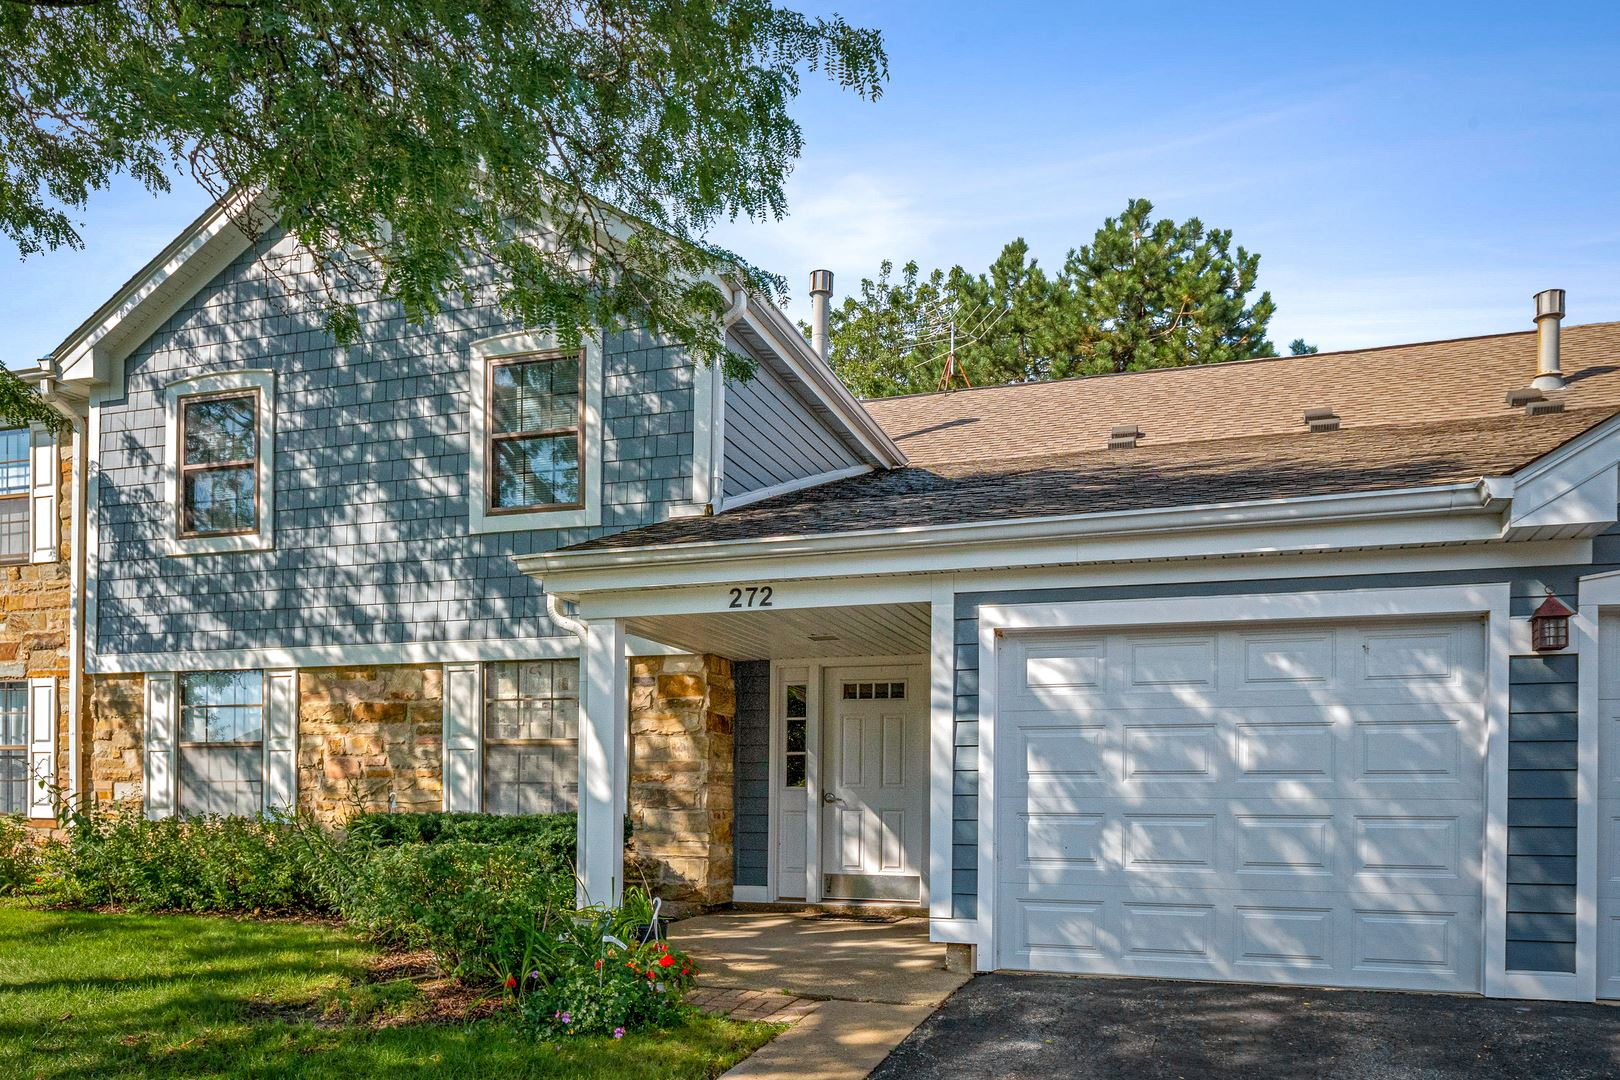 272 Elmwood Lane #D2, Schaumburg, IL 60193 - #: 10640327